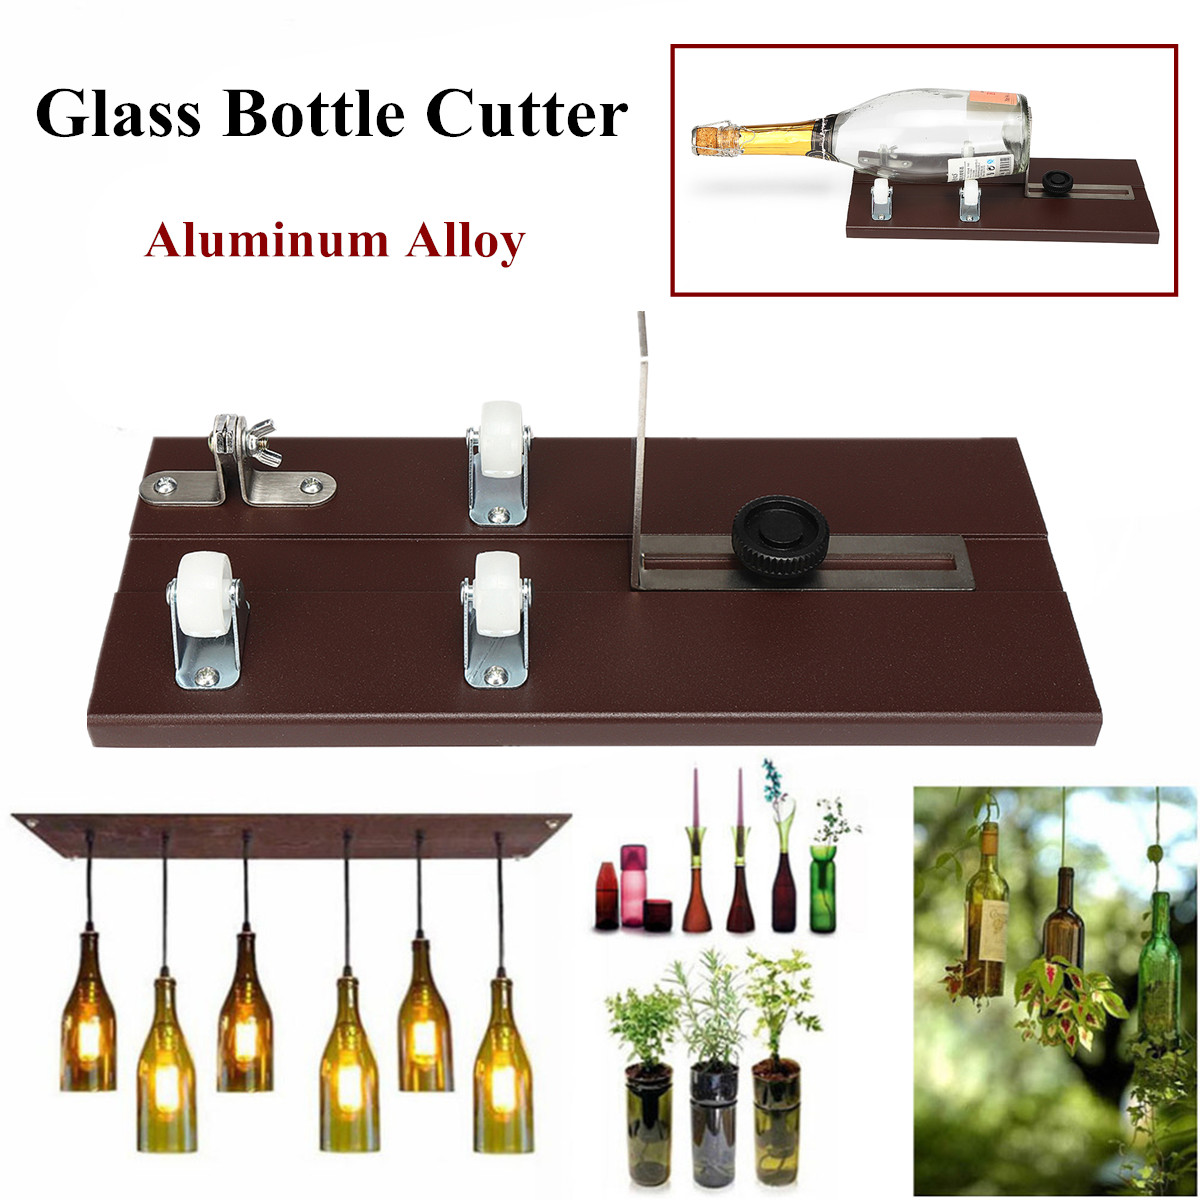 Glass Beer Wine Bottle Jar Cutter Scoring Machine DIY Recycle Cutting Tool Kit